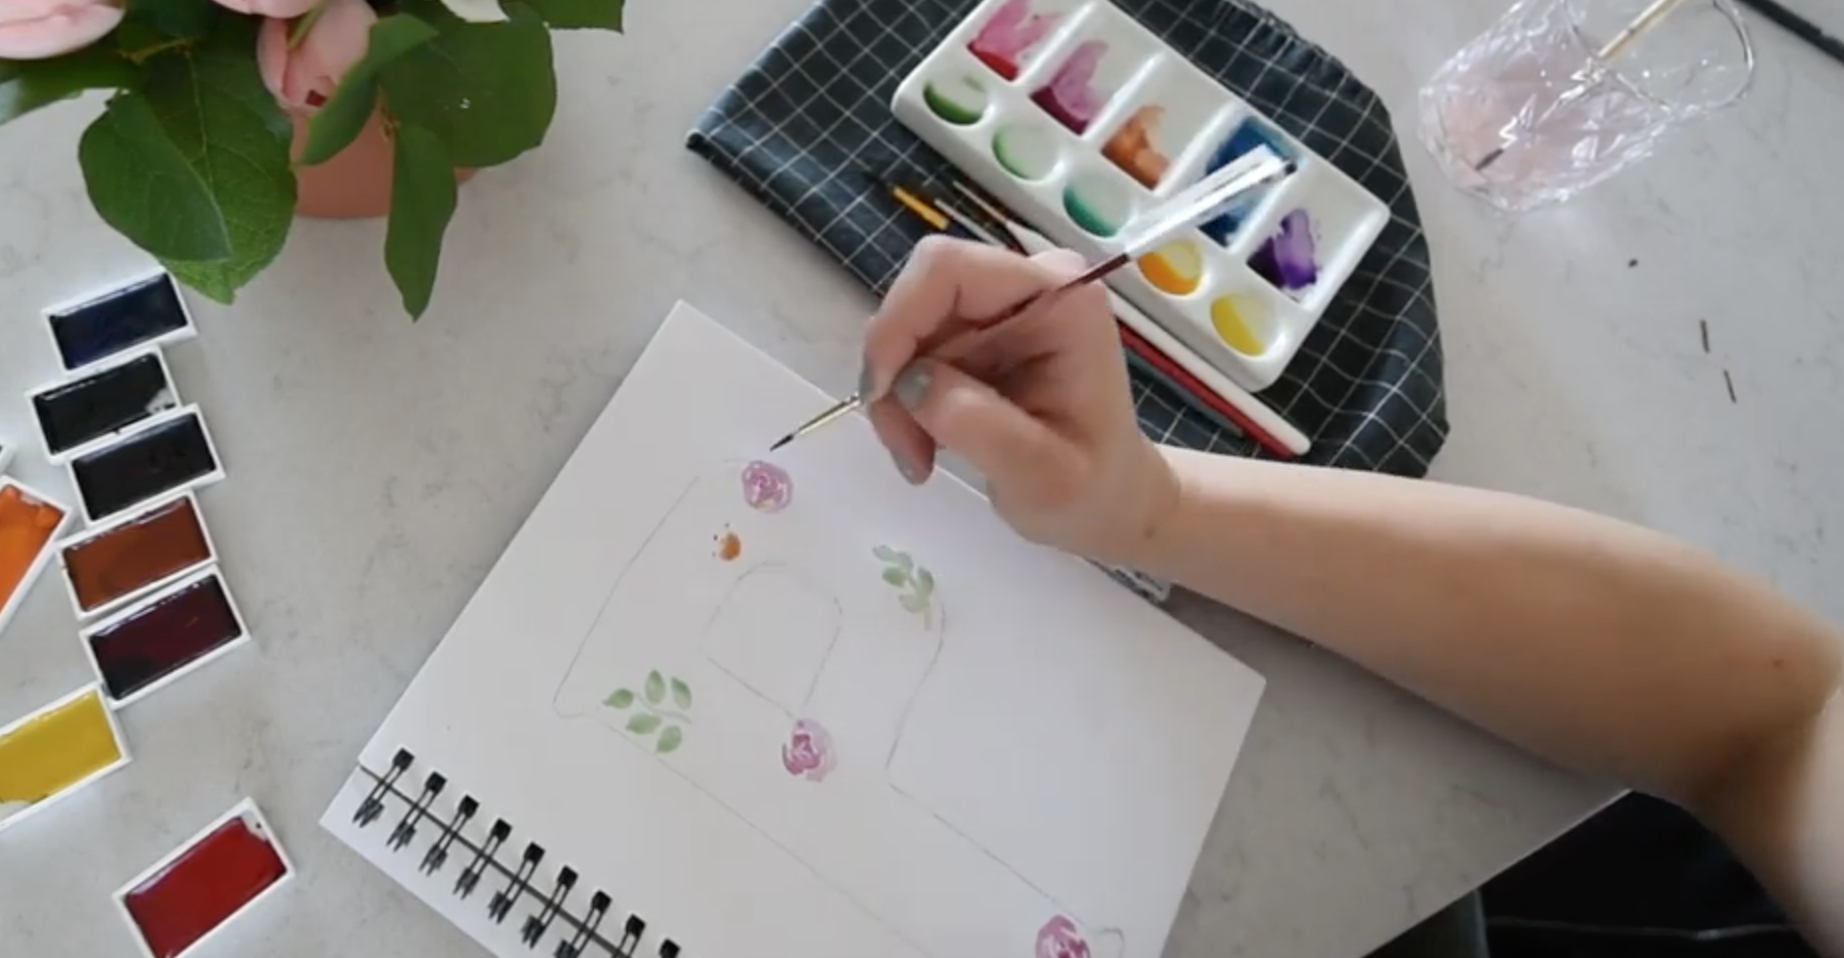 How to make a floral monogram with watercolor